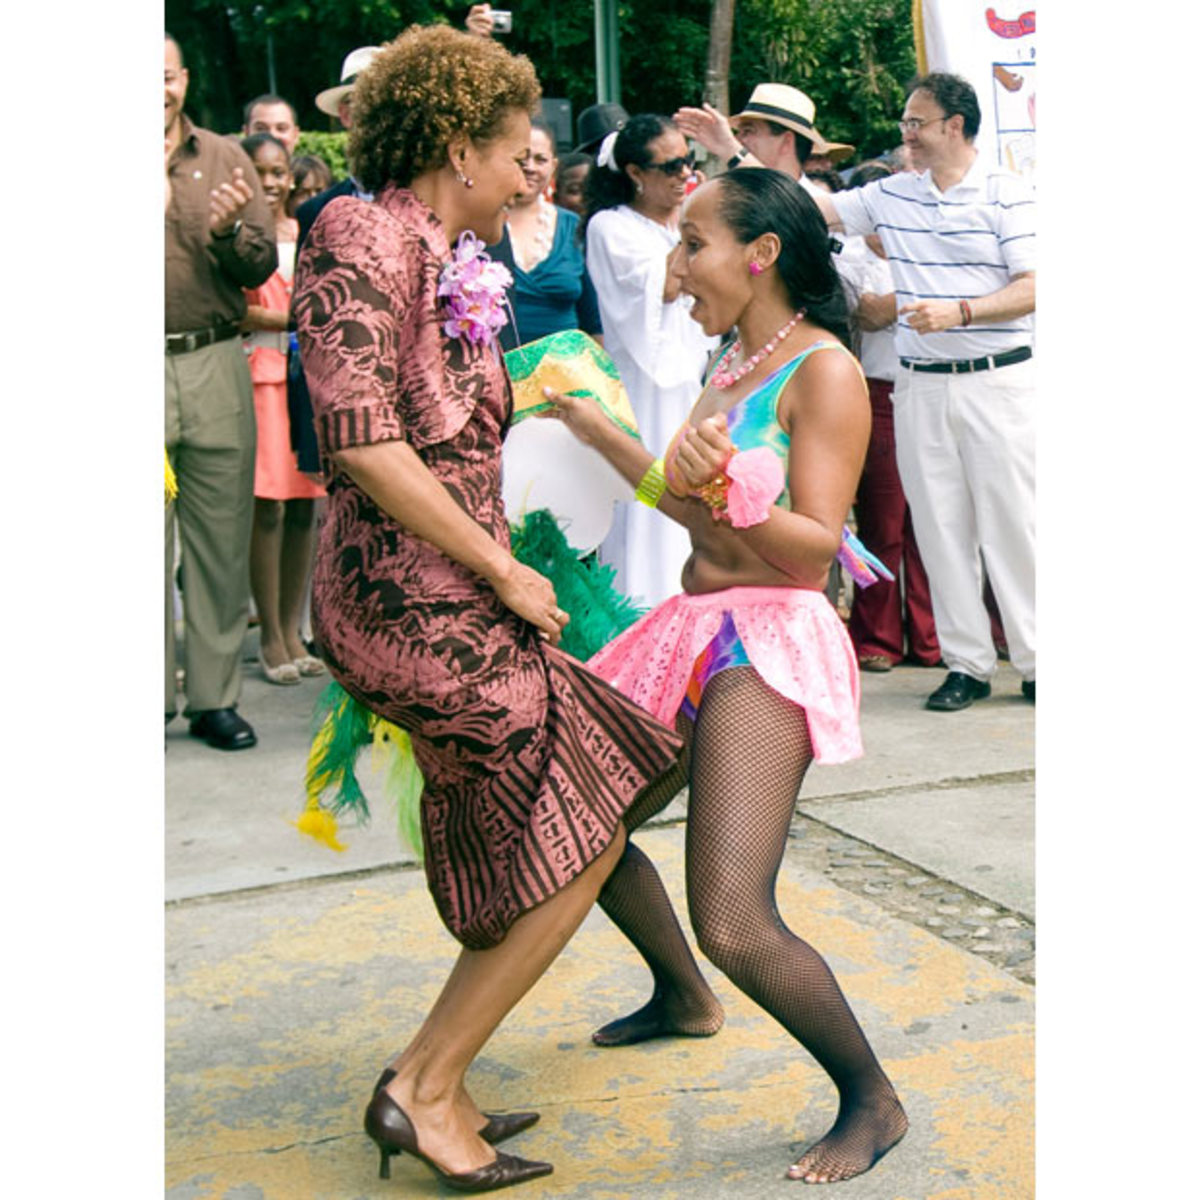 Canadas Governor General Michalle Jean dances in the street after receiving the Keys to the City of Limon in Costa Rica, 14 Dec 2009